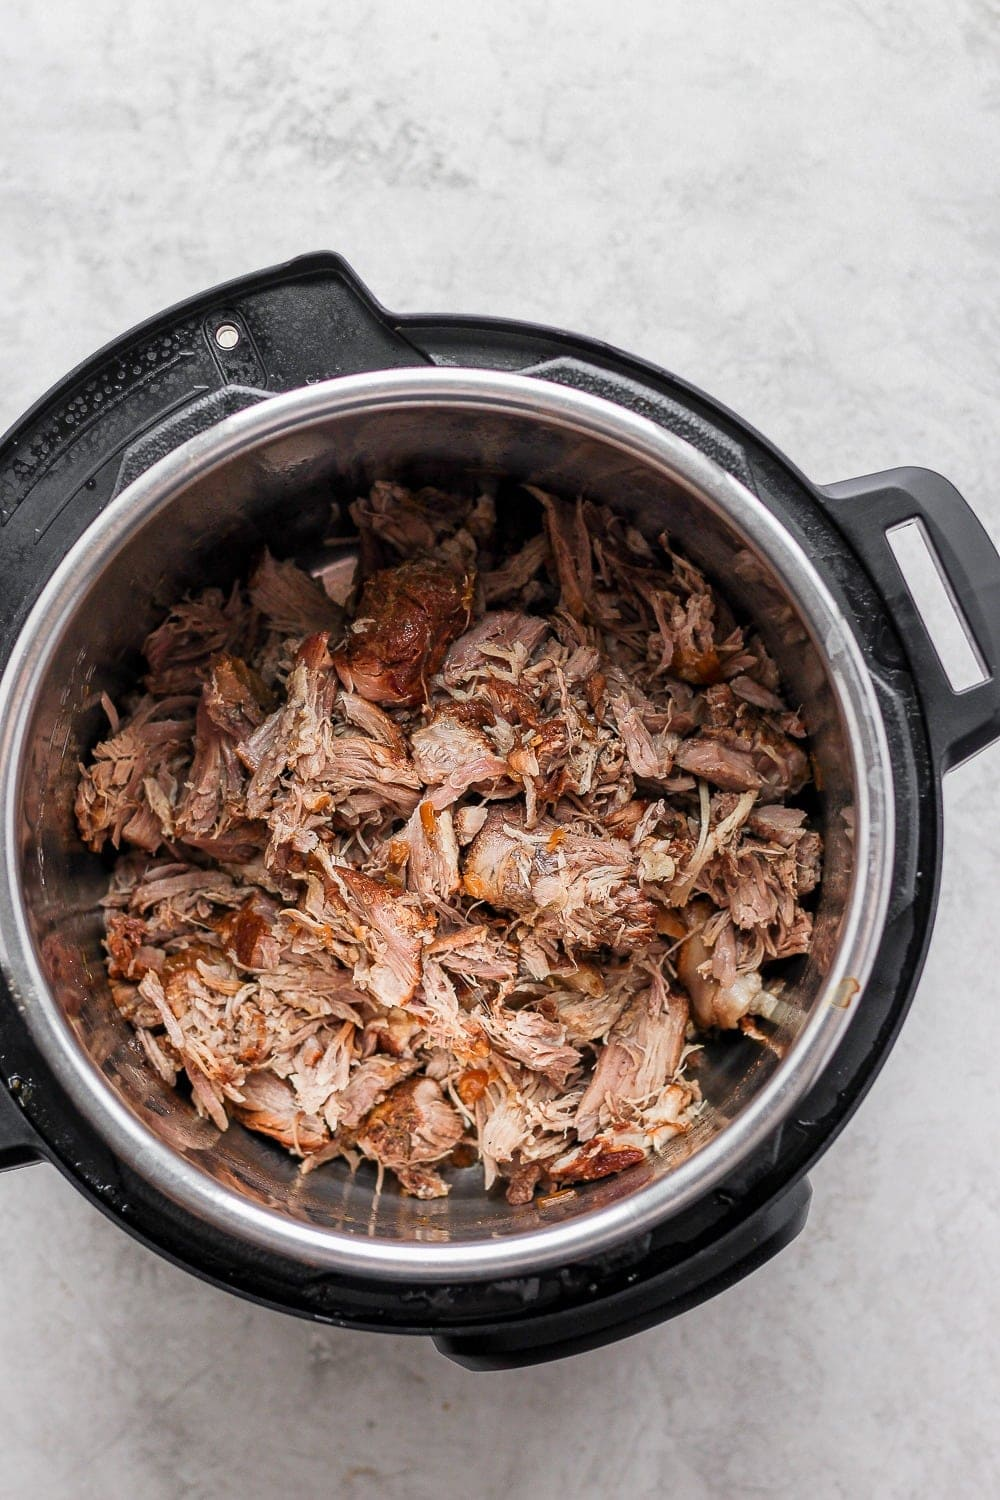 cooked shredded pulled pork in instant pot